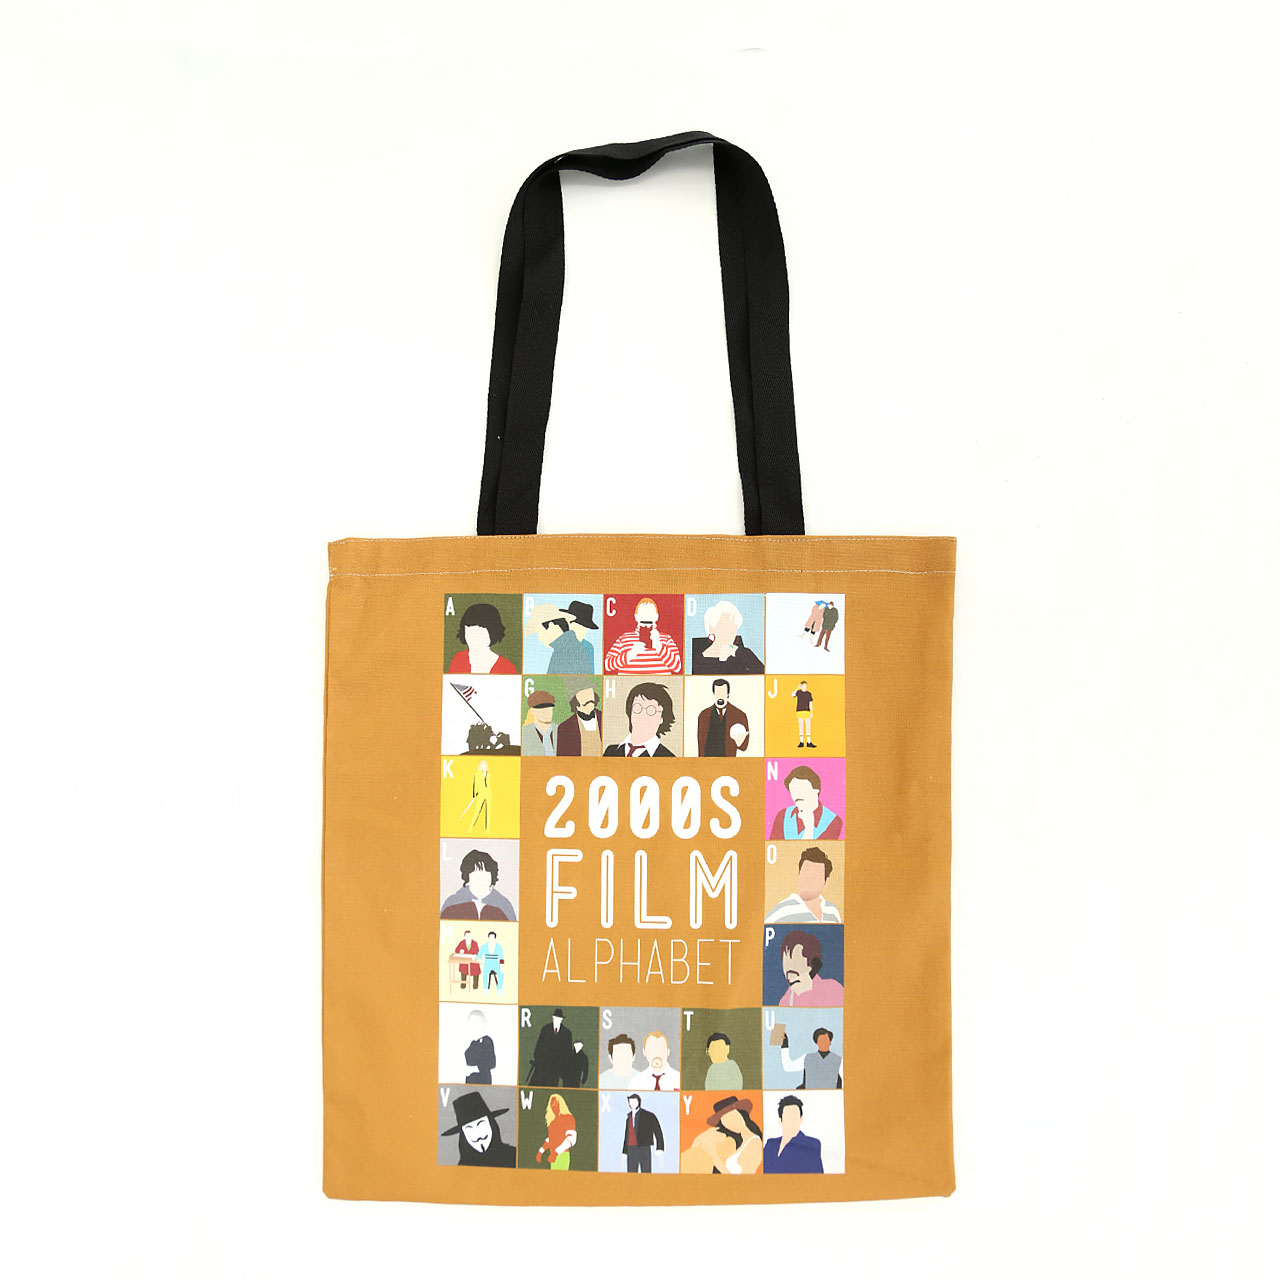 Buy Film Alphabet Tote Bag: 2000s